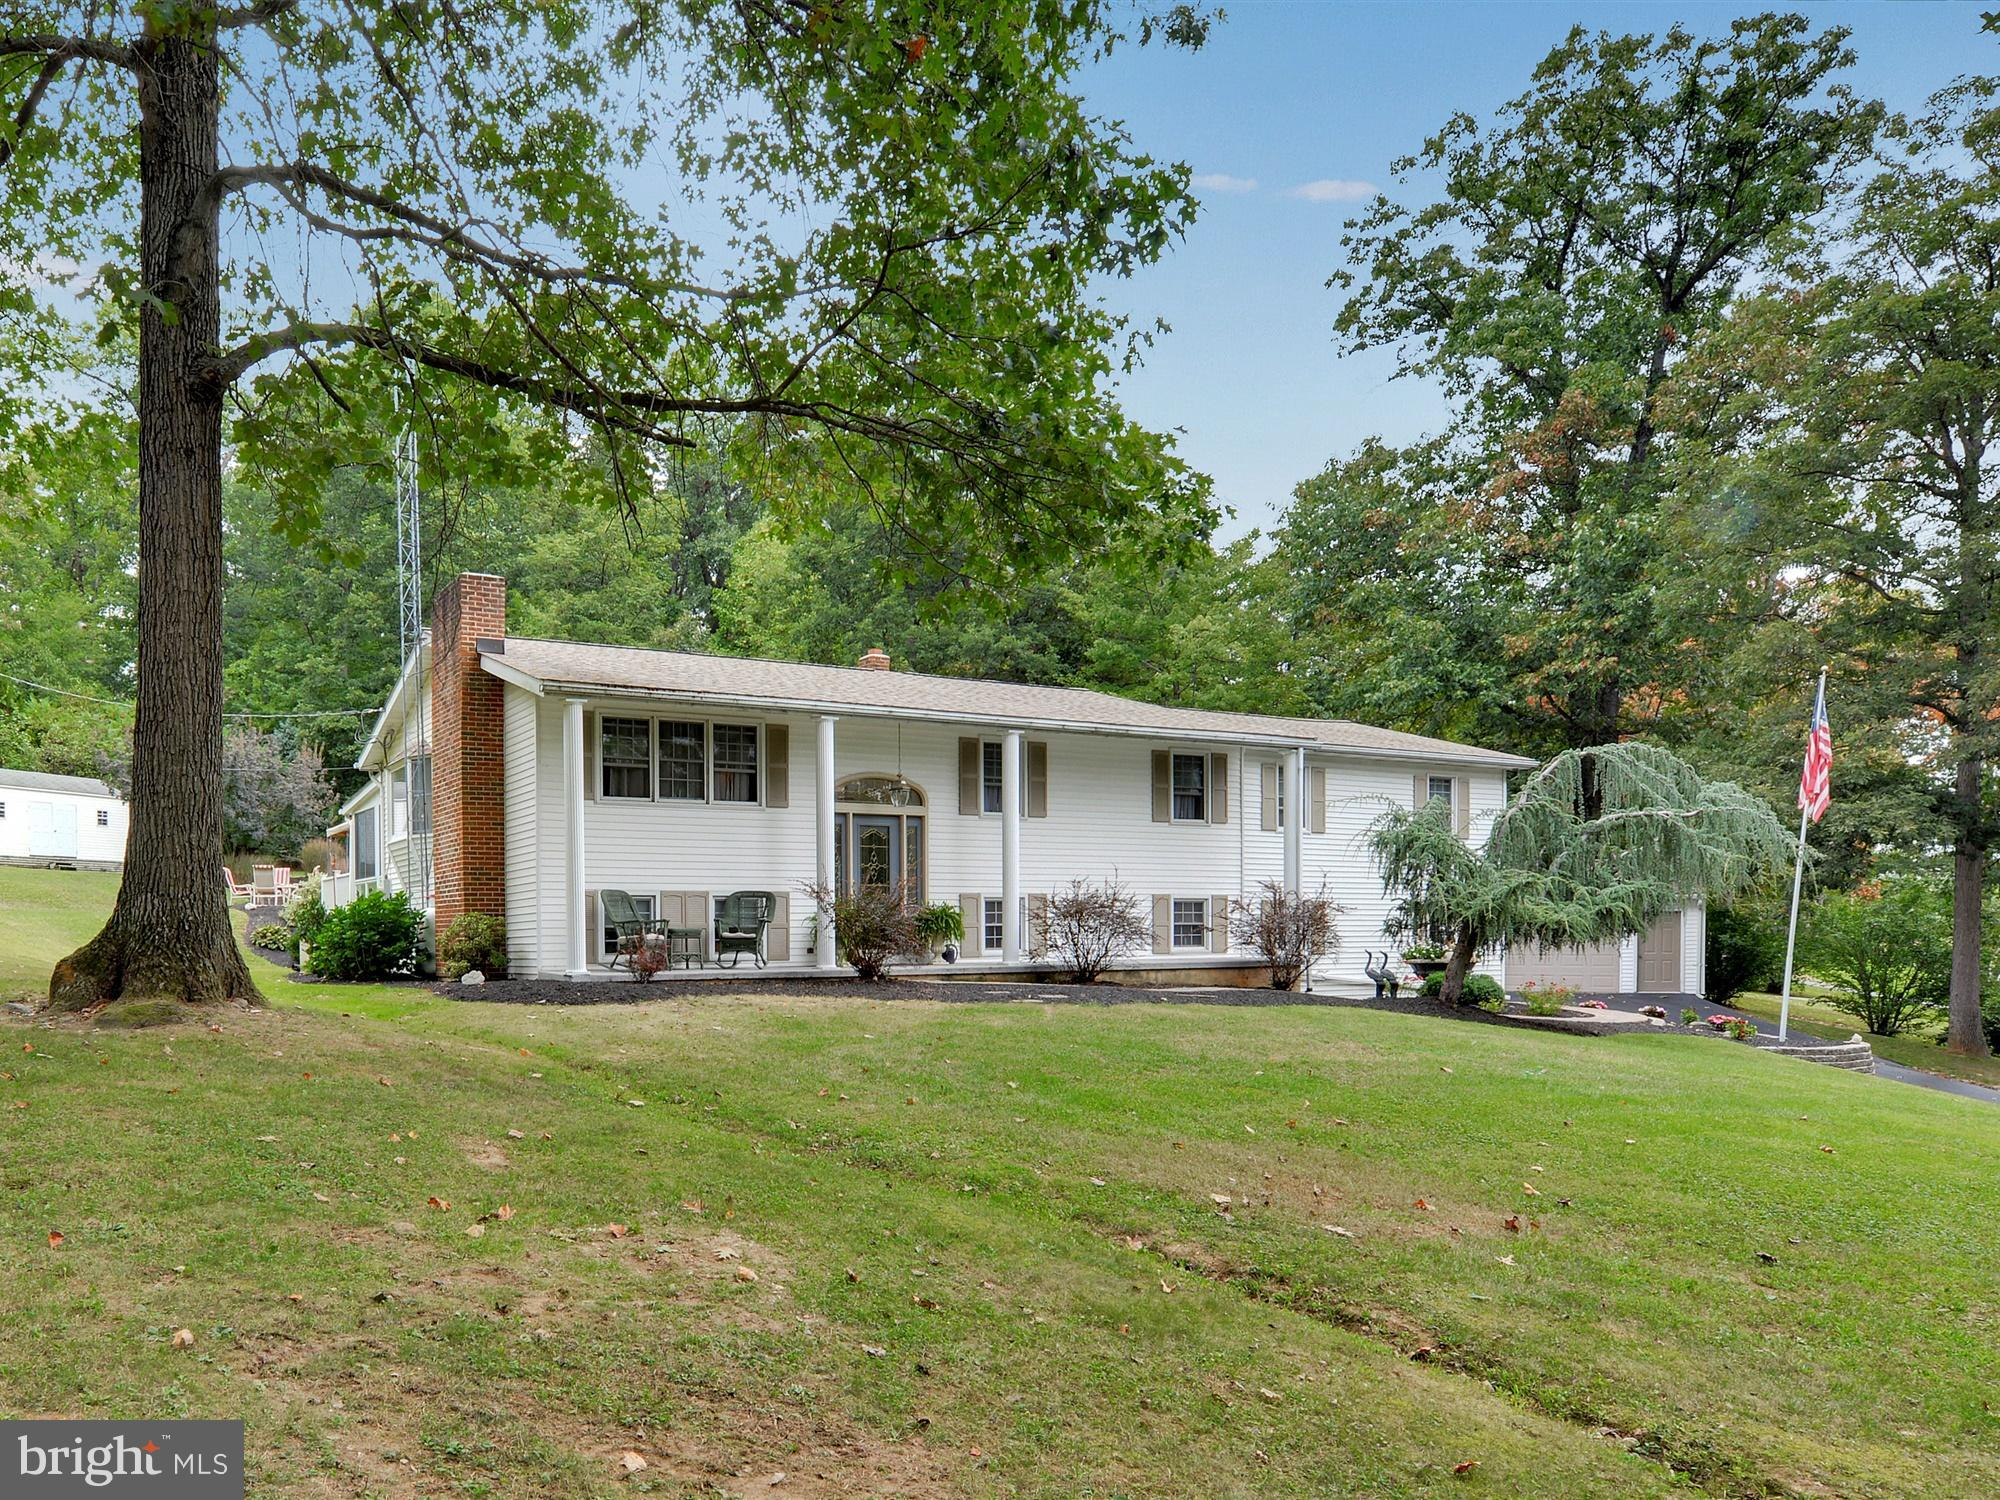 6166 PIGEON HILL ROAD, SPRING GROVE, PA 17362